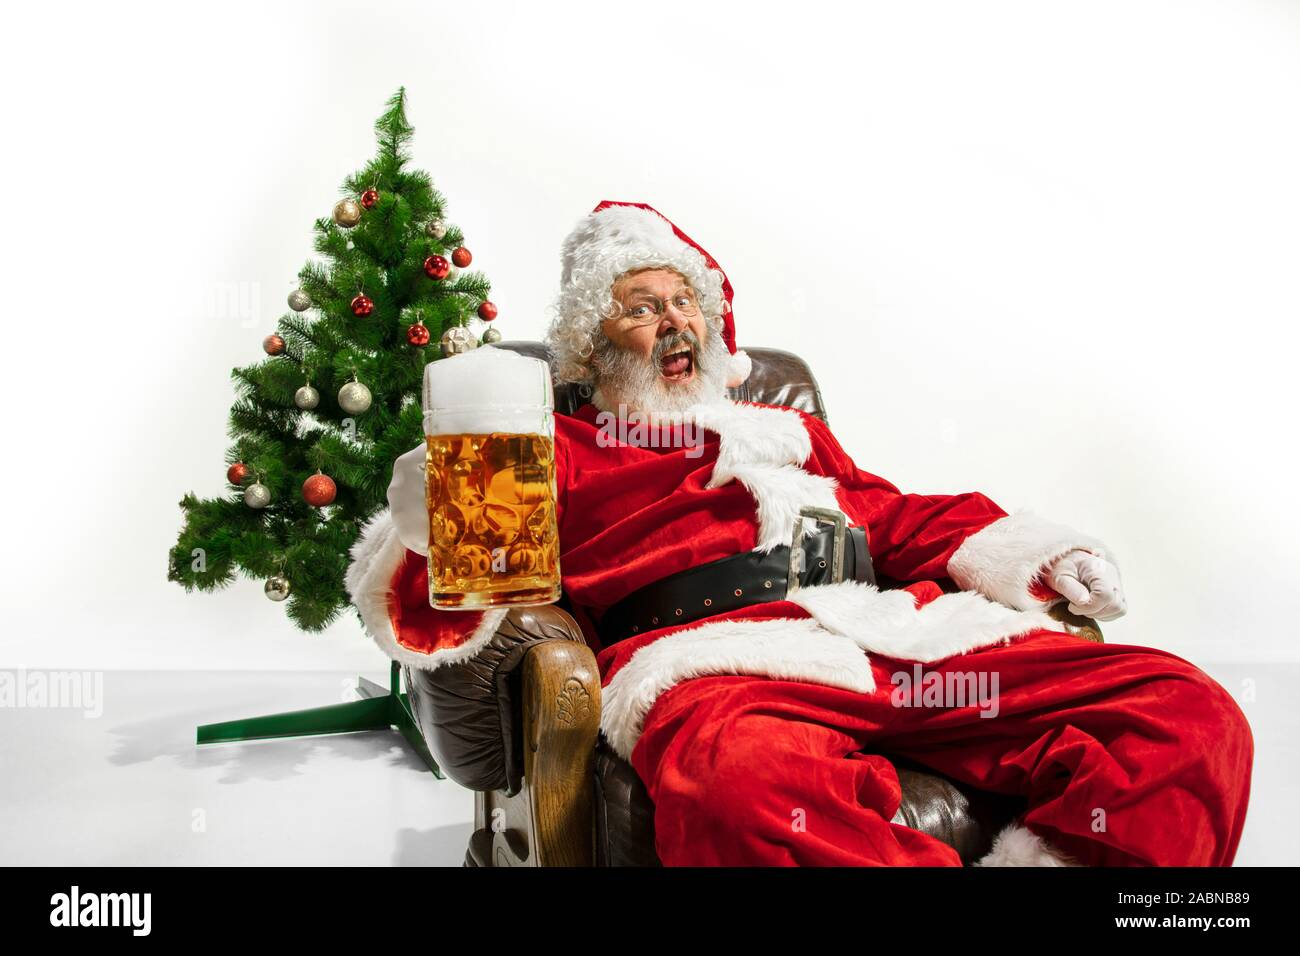 Christmas Beers 2020 Santa Claus drinking beer near the Christmas tree, congratulating